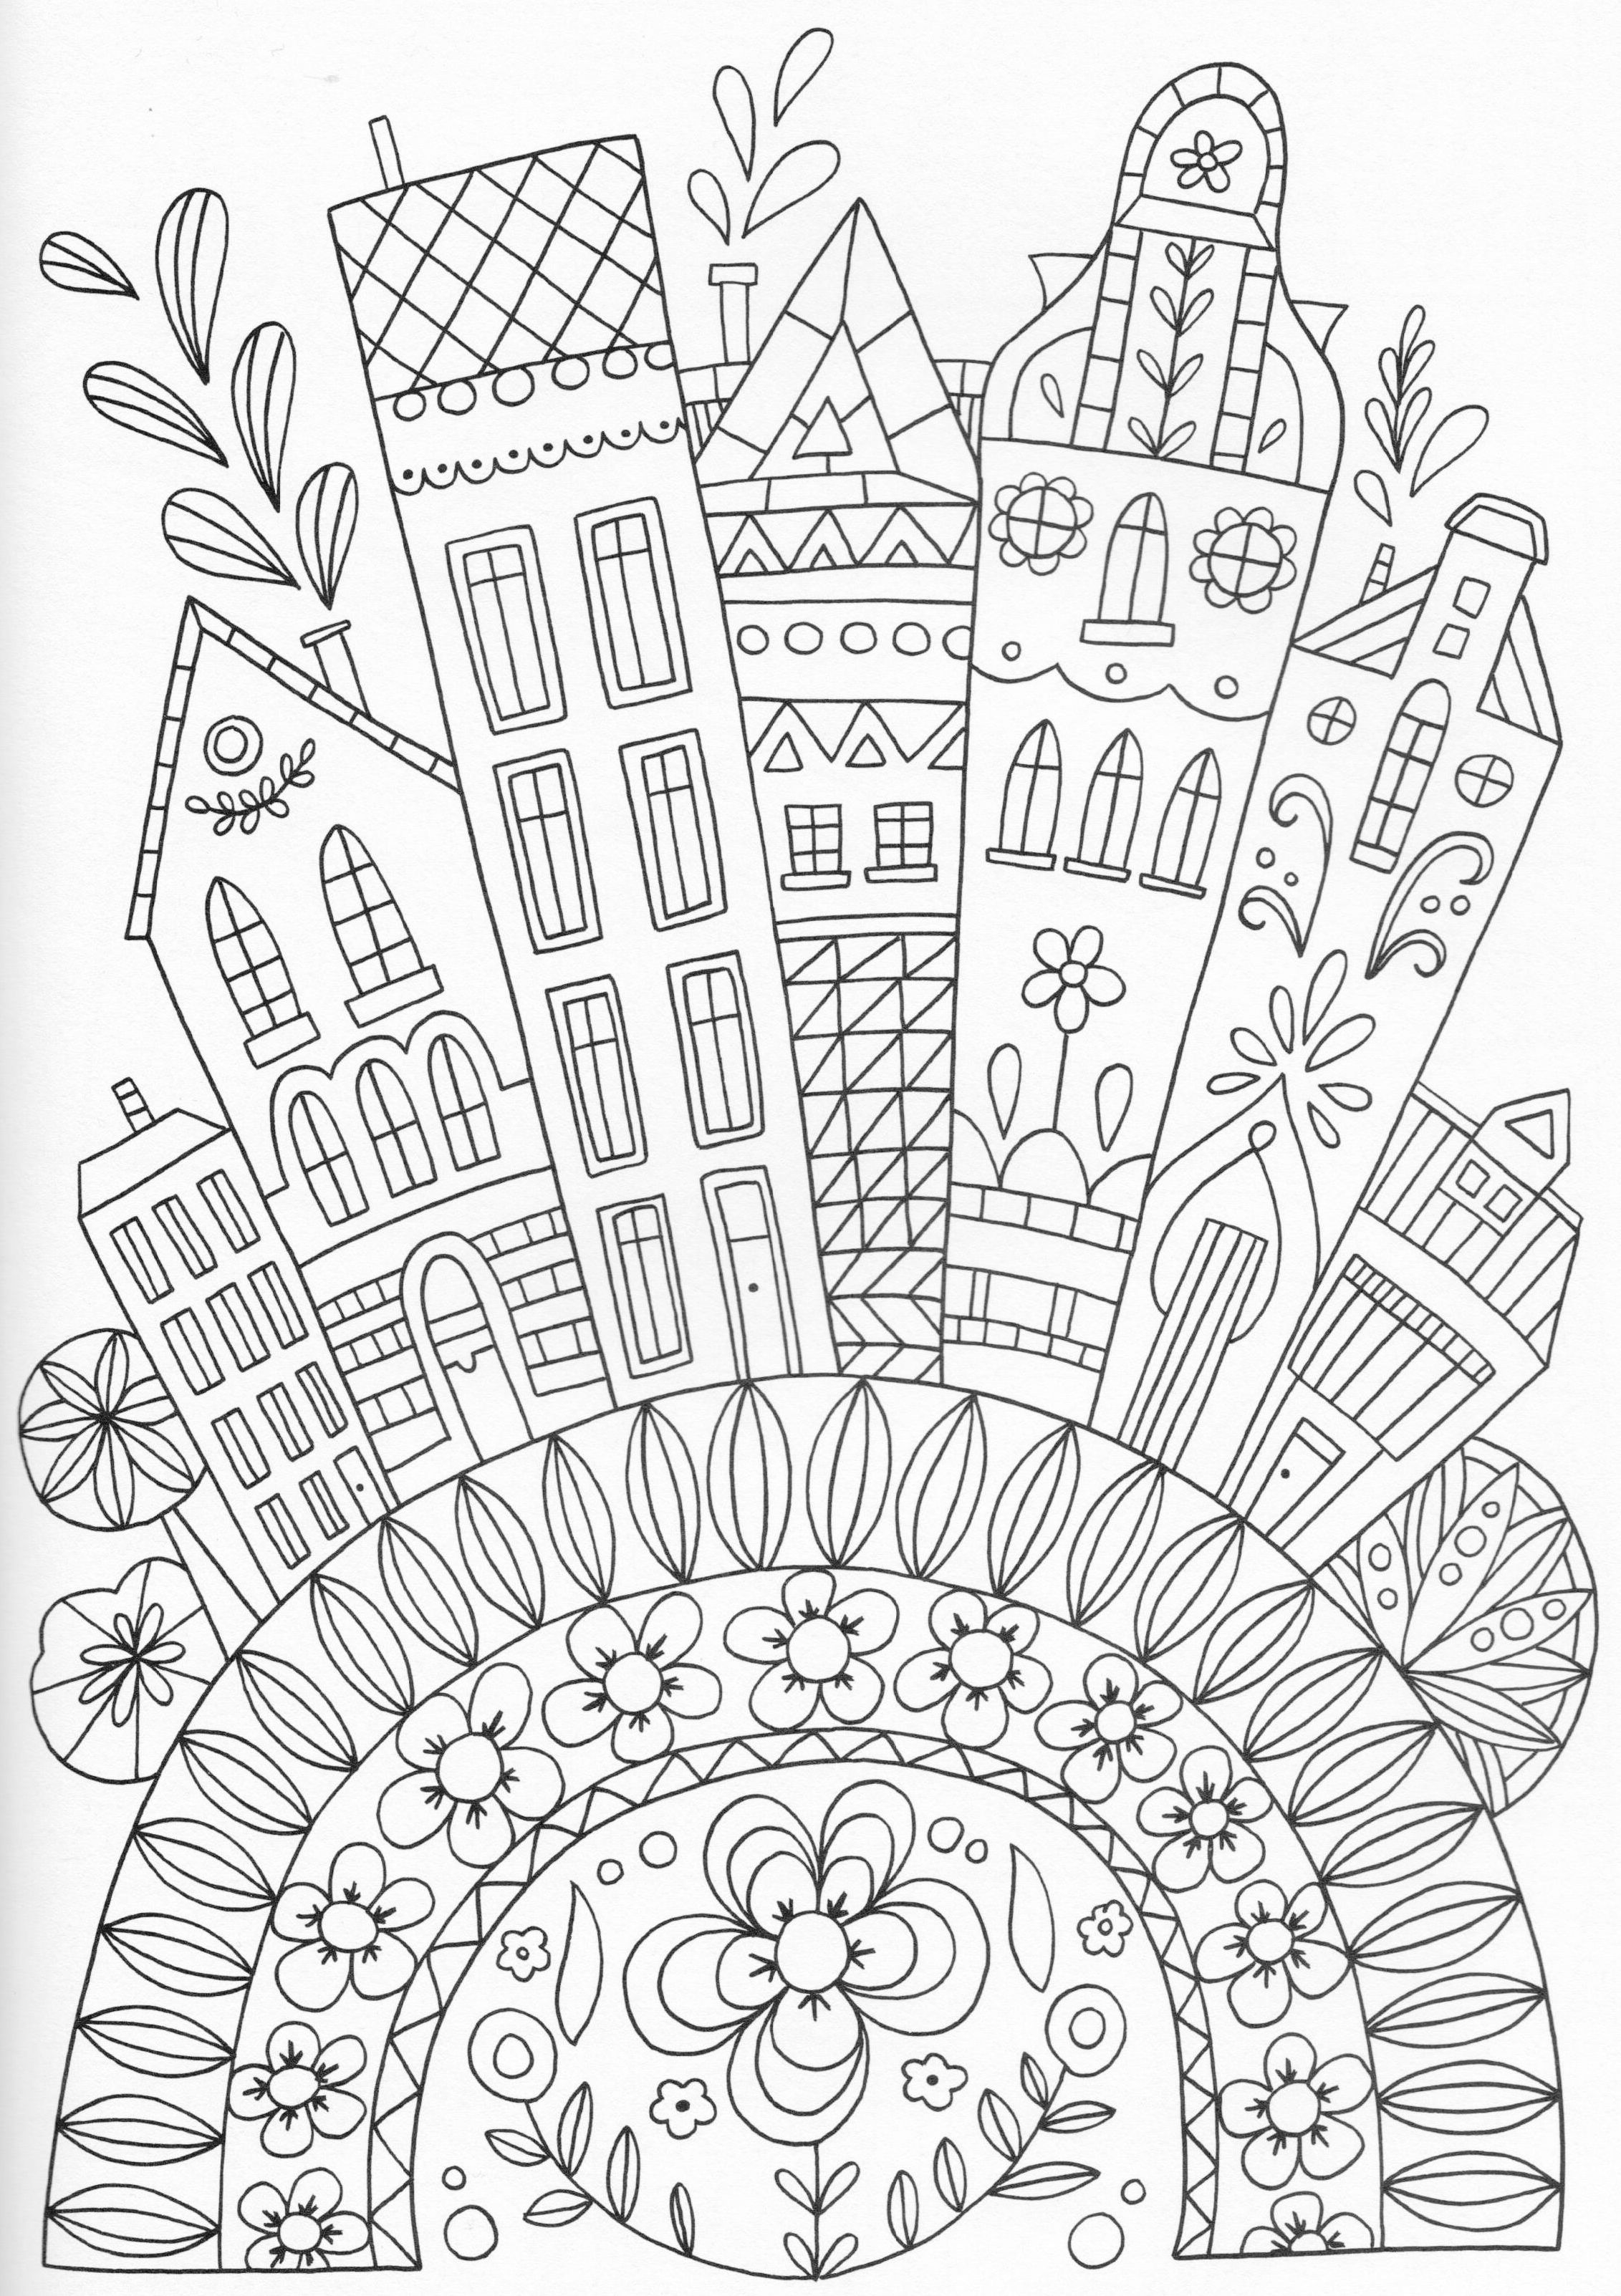 scandinavian coloring book pg 32 - Coloring Pg